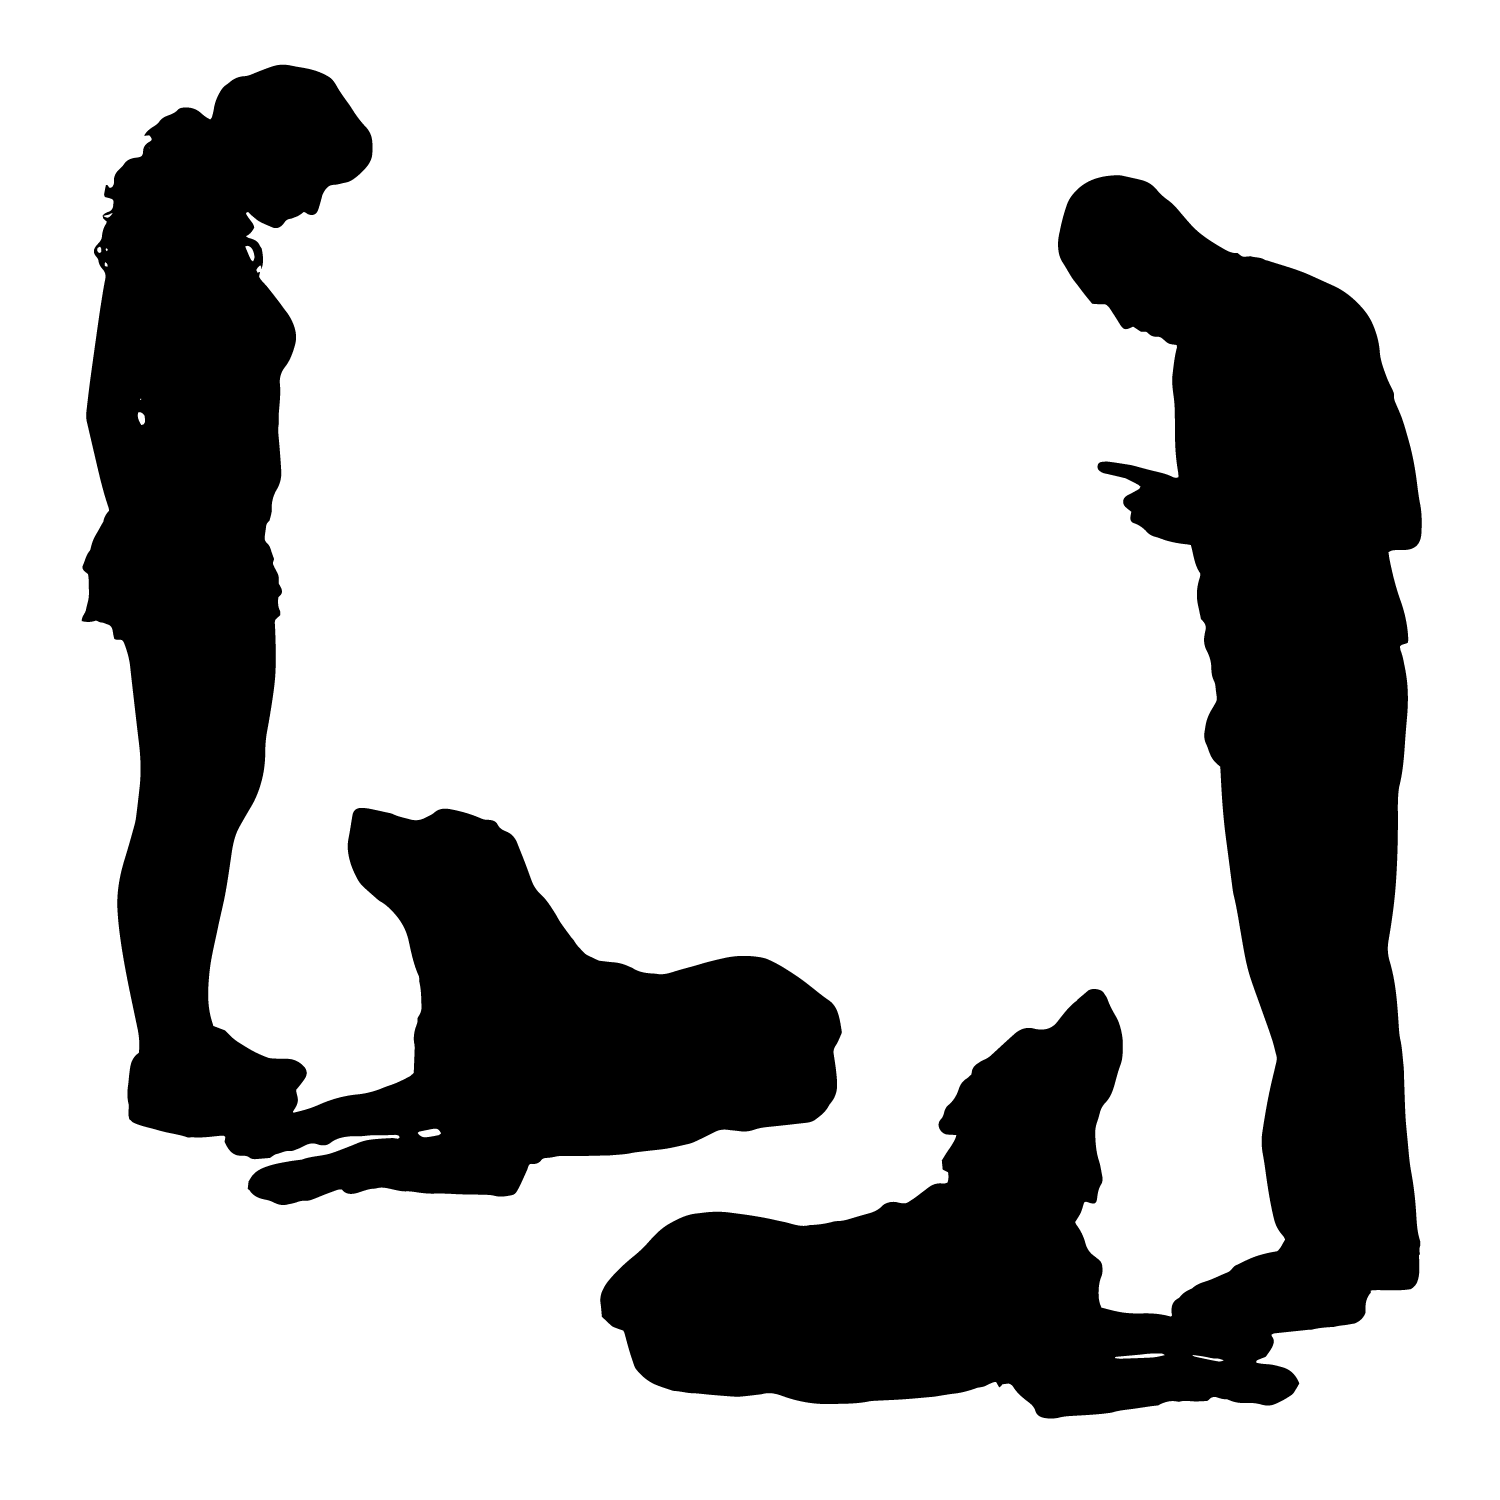 Contact request a job. Clipart puppy shadow